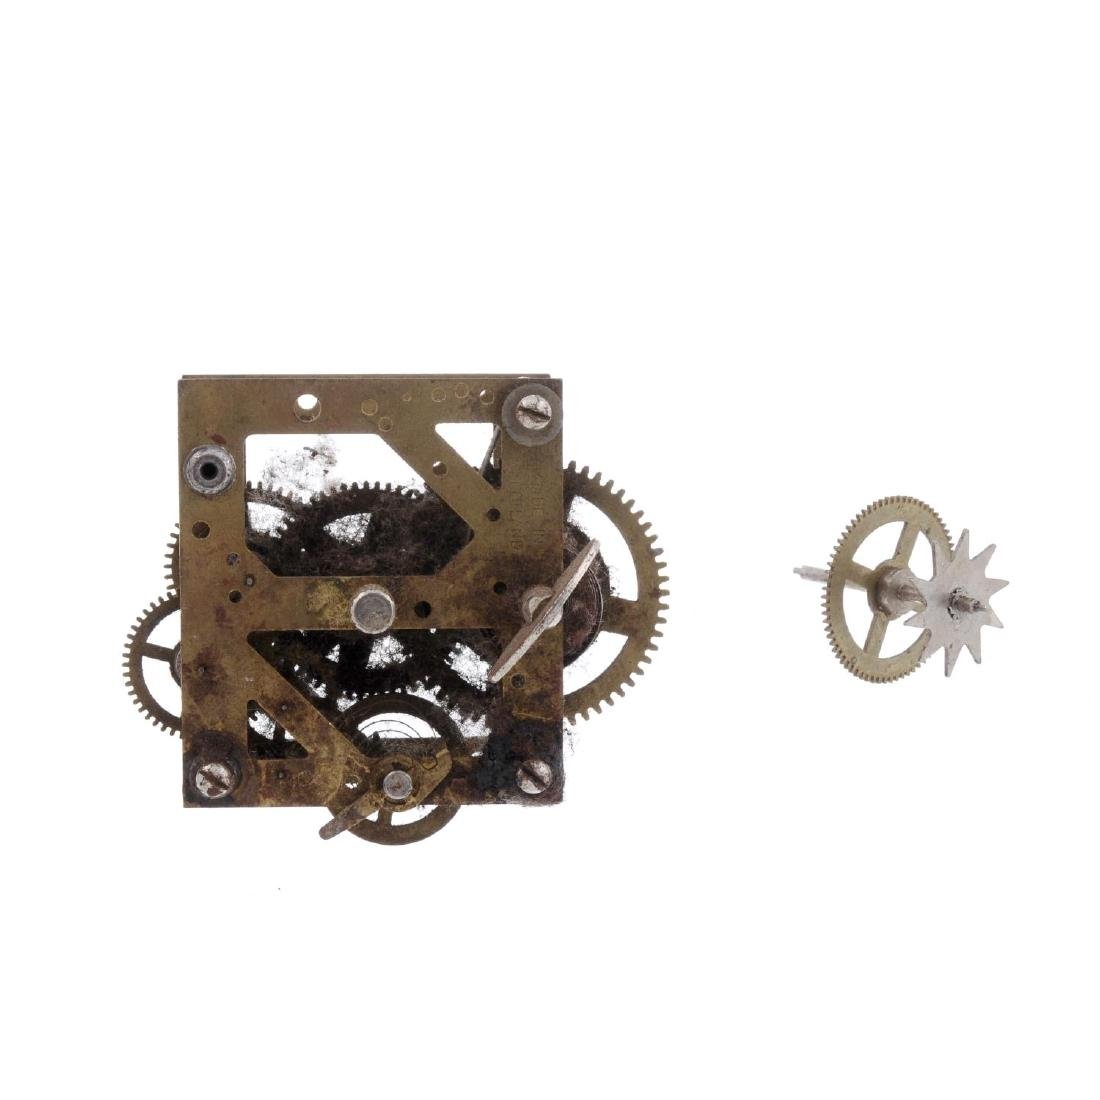 A group of assorted watch and clock parts. All